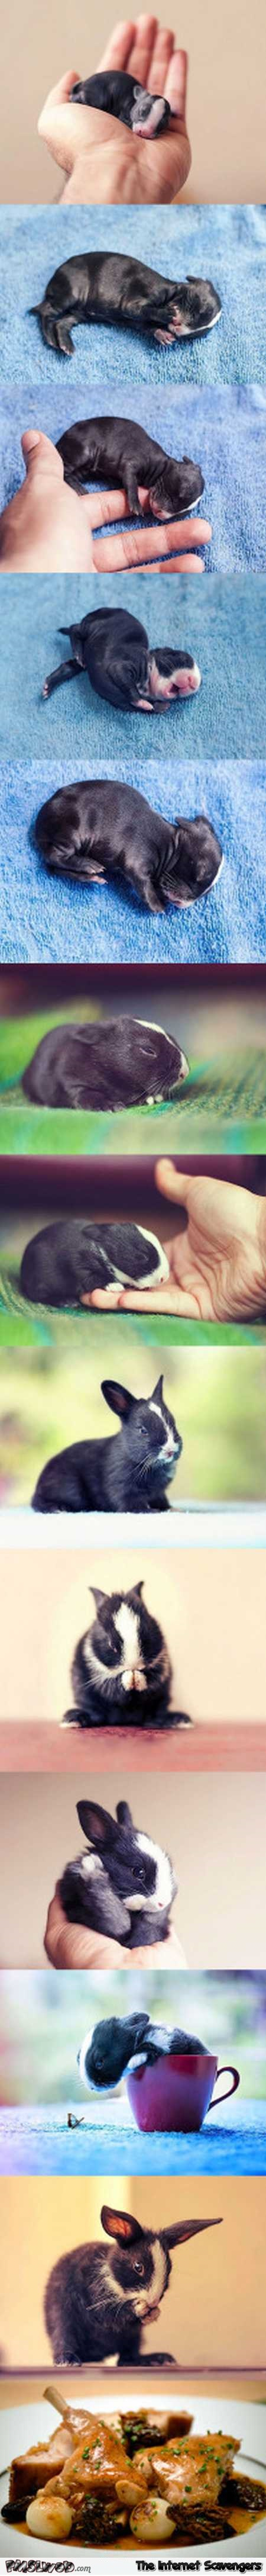 Funny inappropriate baby rabbit humor @PMSLweb.com